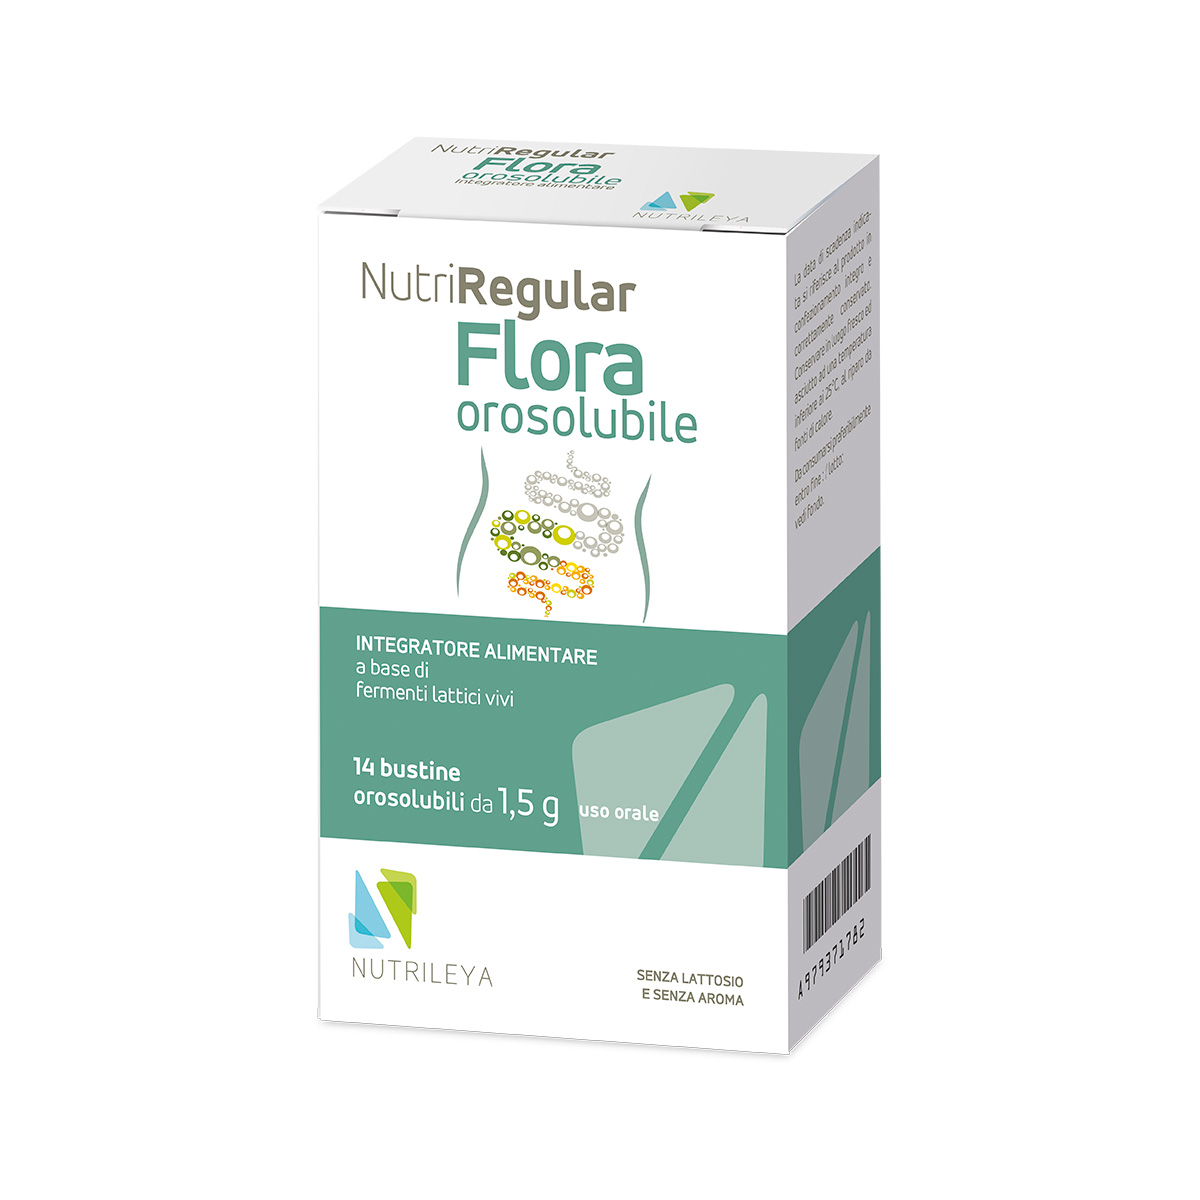 nutriregular flora orosolubile